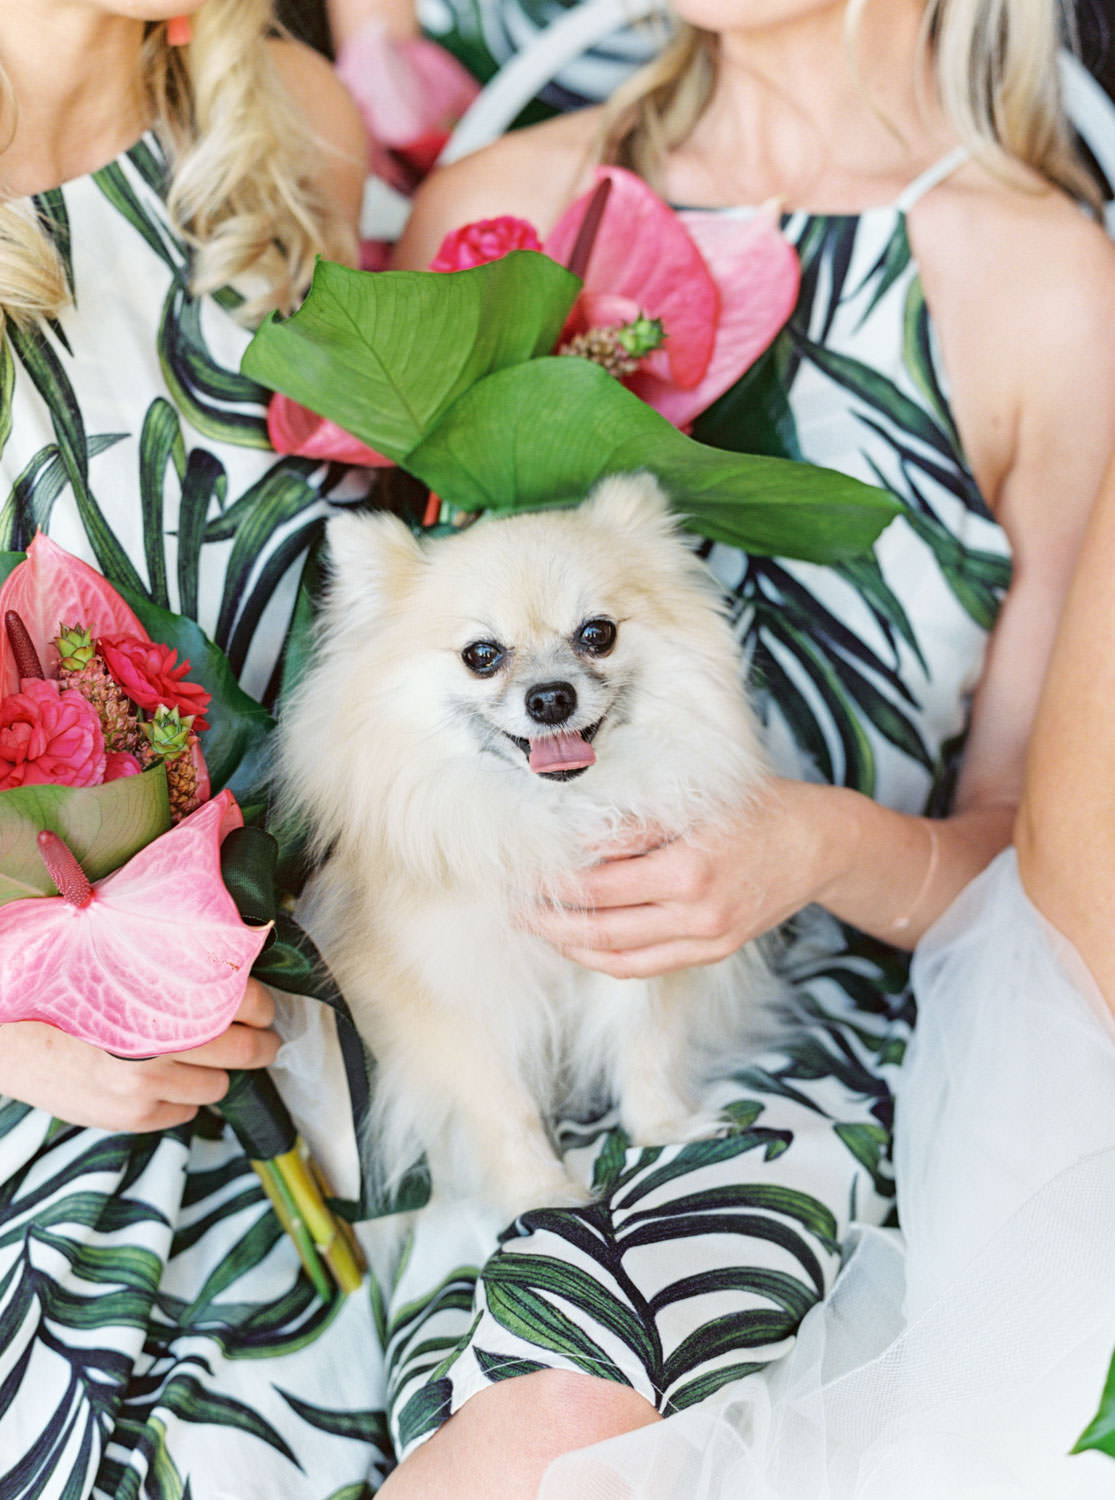 Pomeranian in a little doggy wedding dress. Bridesmaids in tropical palm leaf print short dresses carrying bouquets with palm leaves and pink anthurium. Ceremony white pergola site with large white planters filled with palm leaves and paddle cactus plants covered in blush and fuchsia pink flowers. Riviera Palm Springs Wedding by Cavin Elizabeth Photography